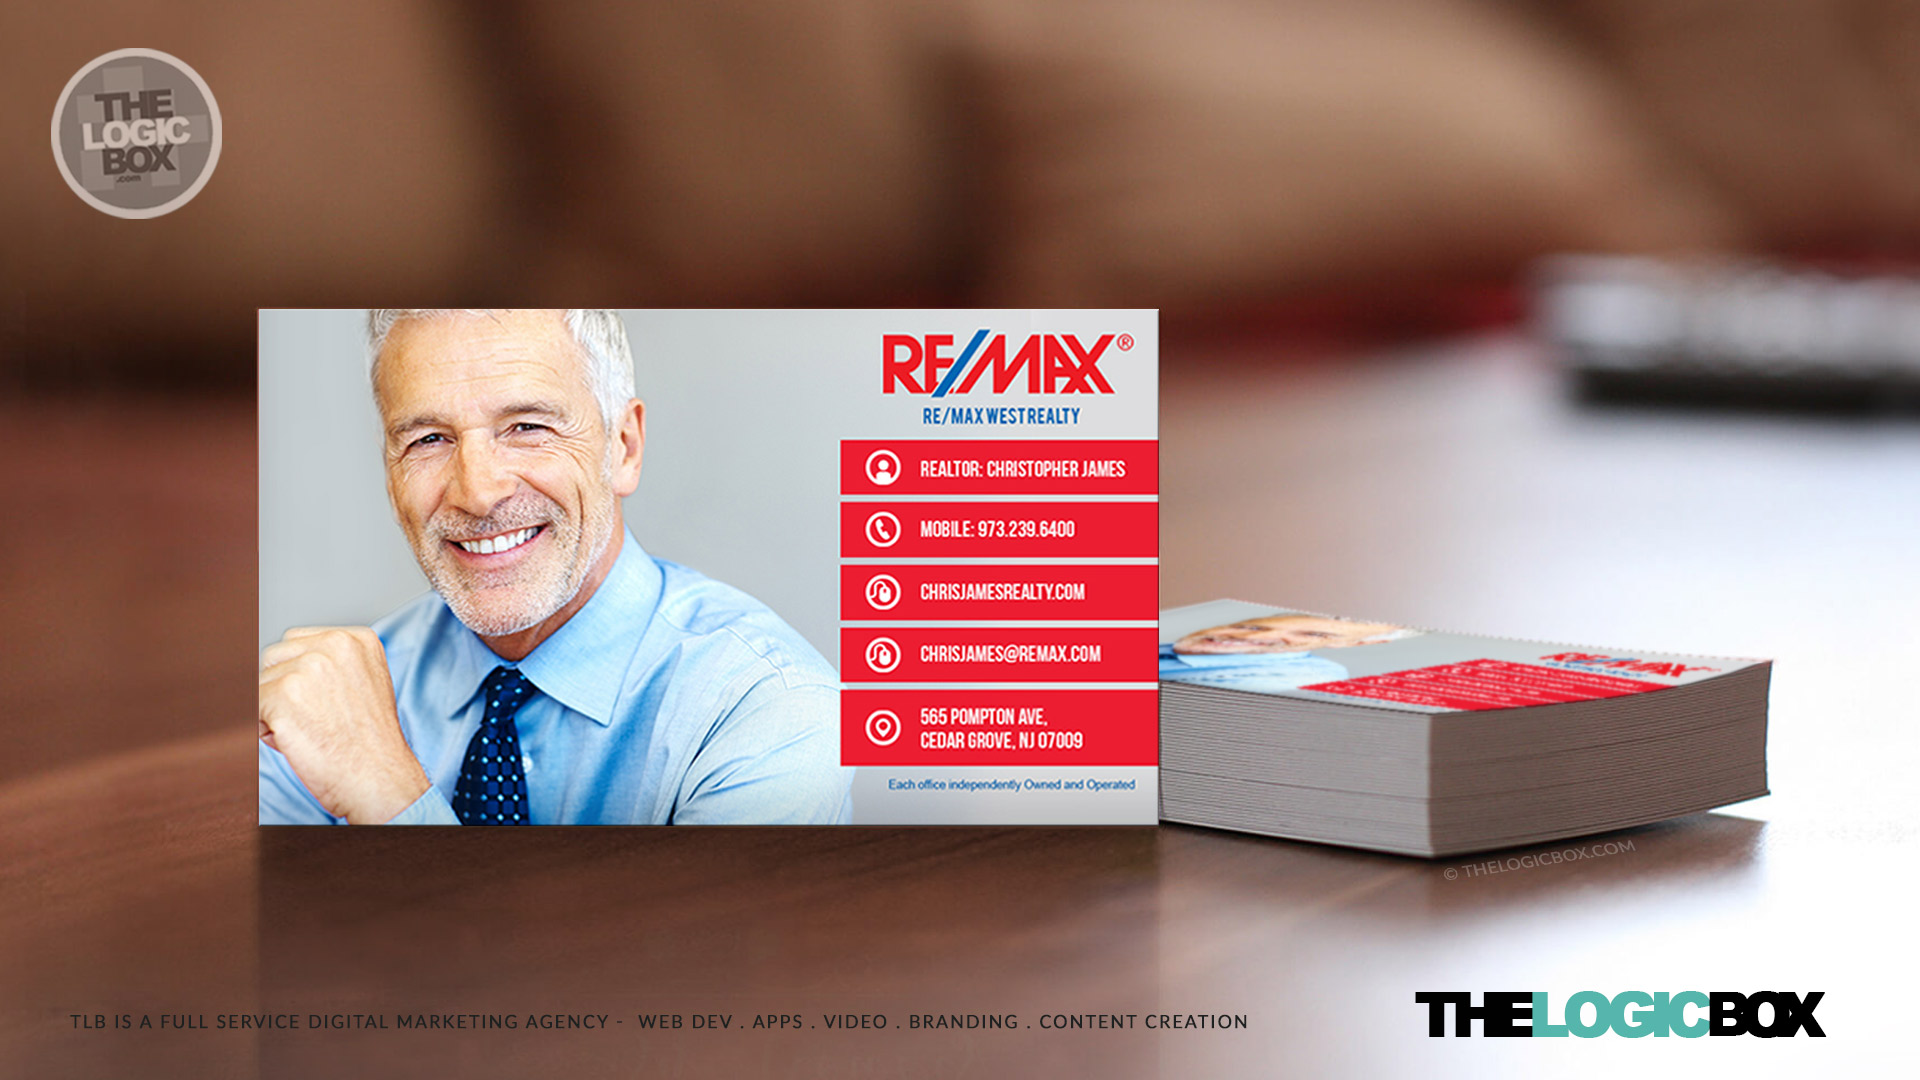 Business-Card-the-logic-box-agency-1-remax